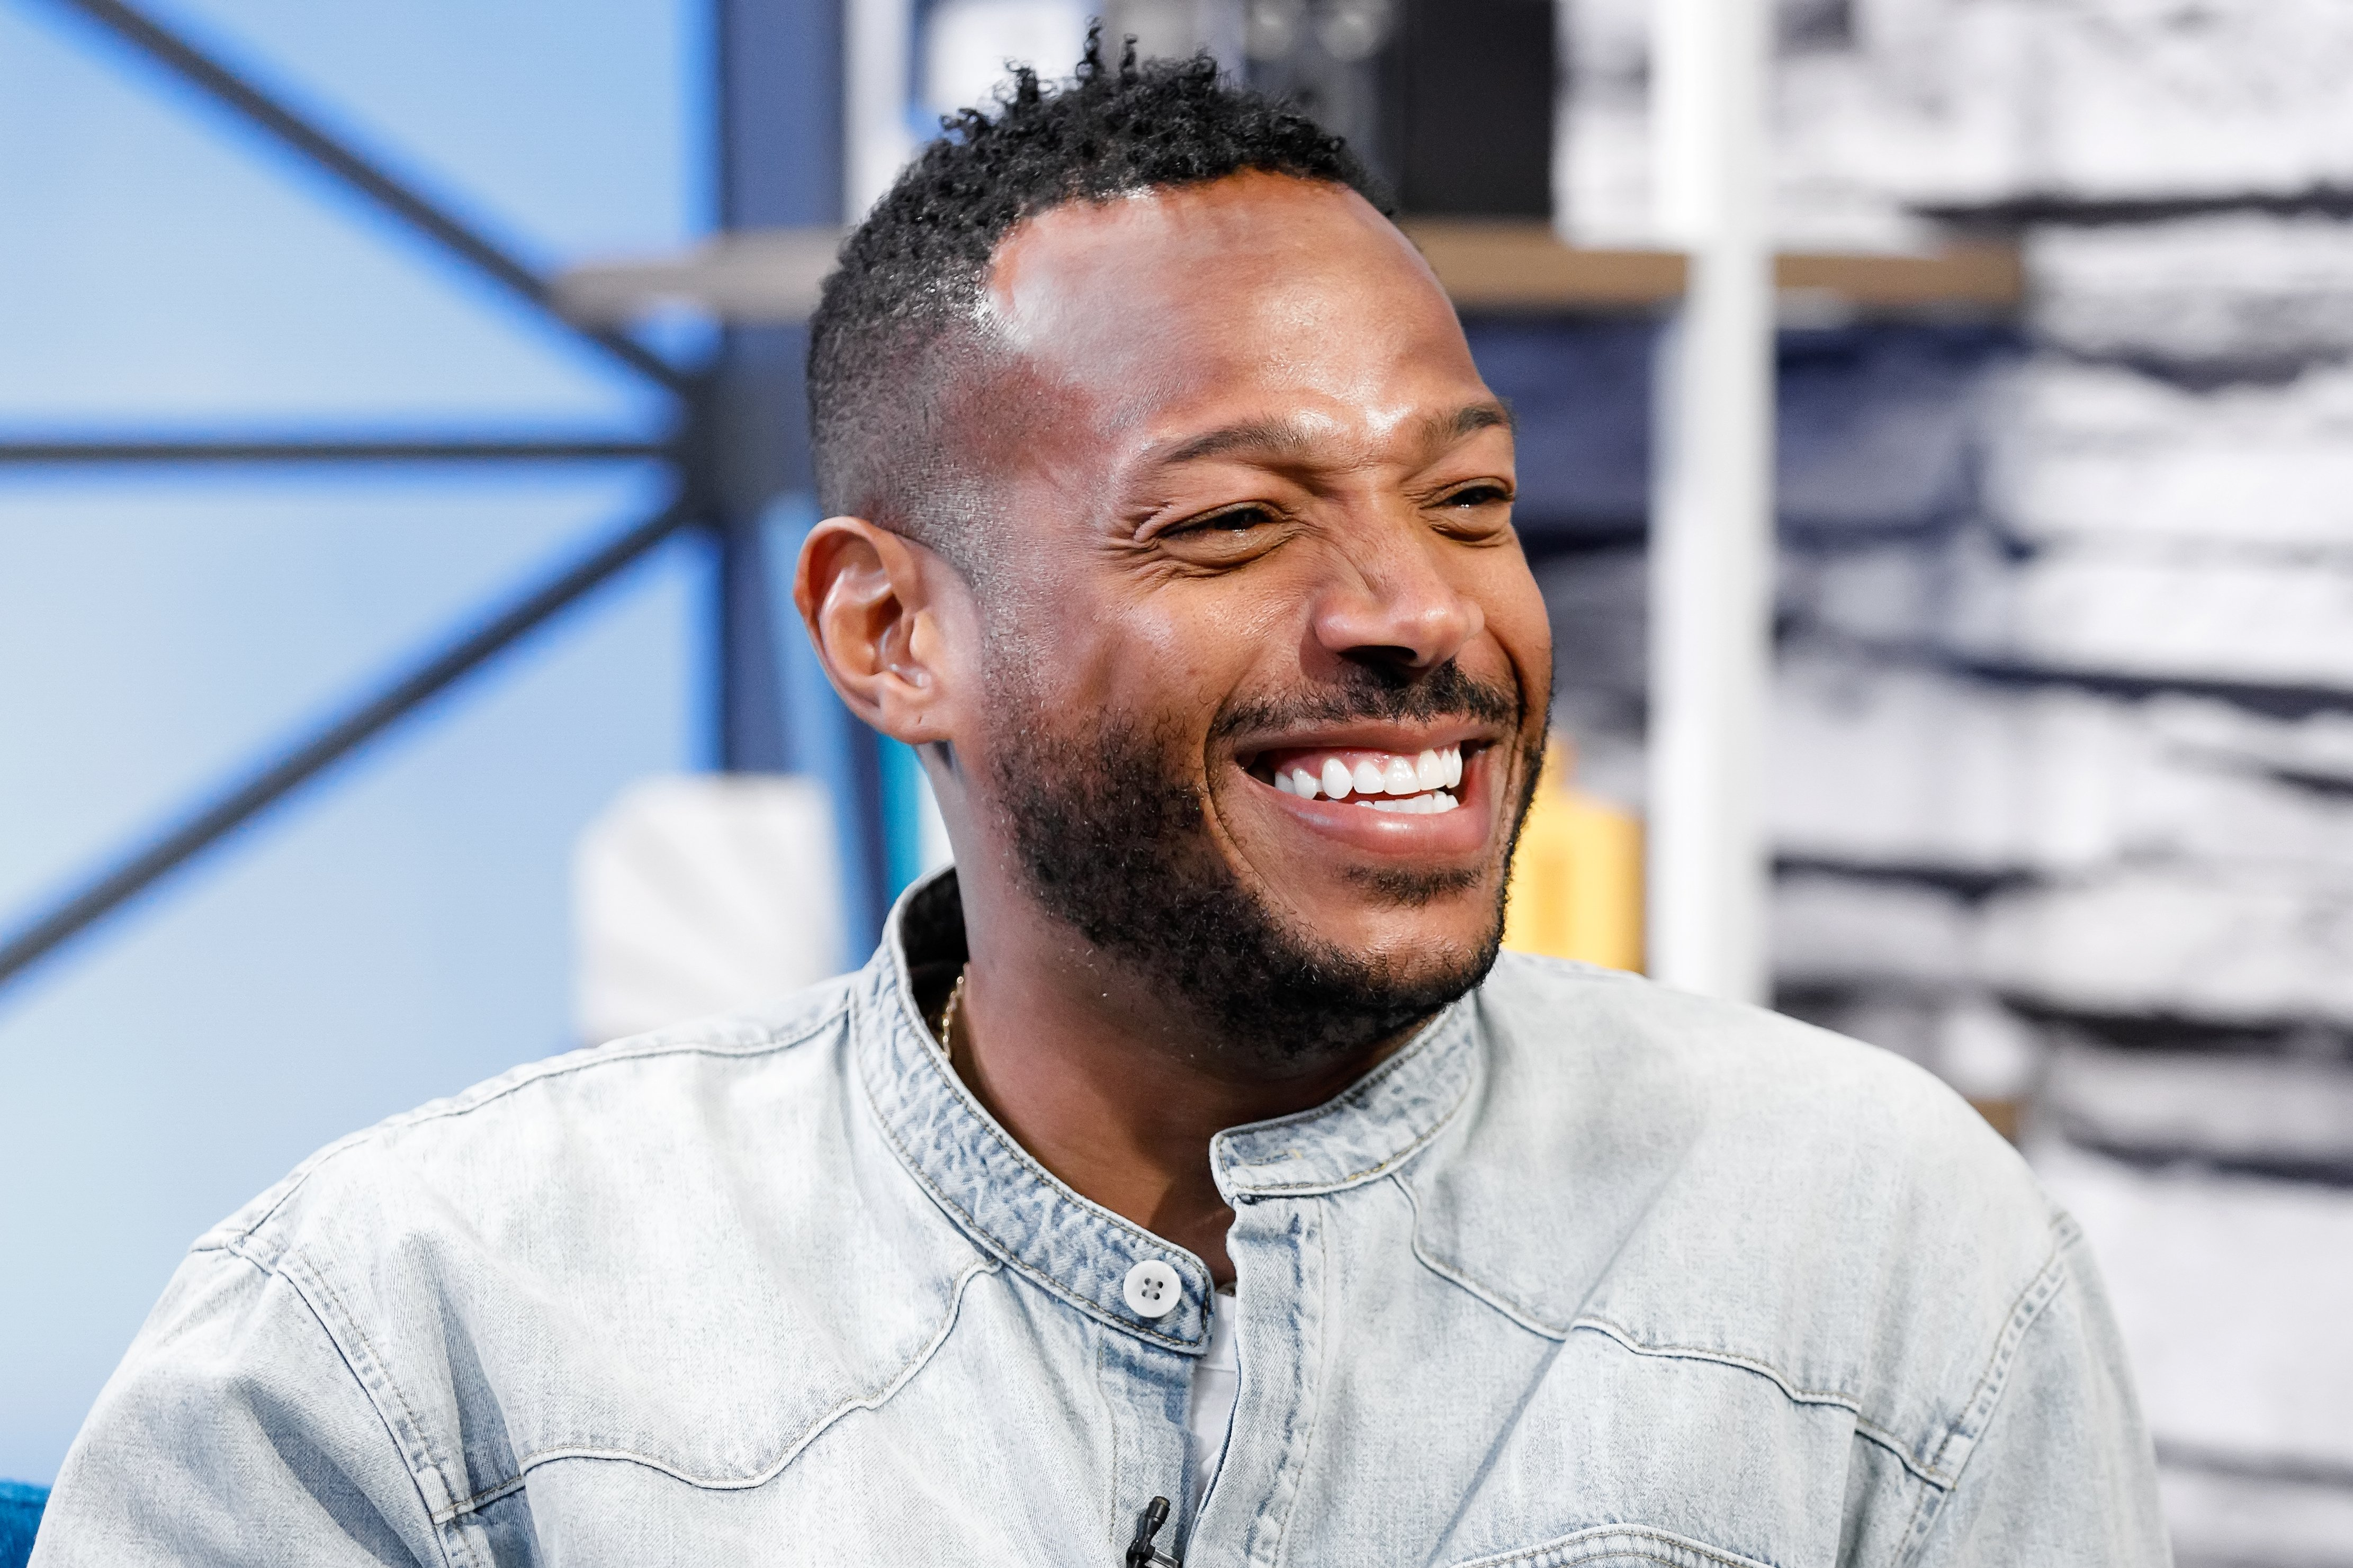 Image Credits: Getty Images / Rich Polk | Actor Marlon Wayans visits 'The IMDb Show' on July 15, 2019 in Studio City, California. This episode of 'The IMDb Show' airs on August 15, 2019.